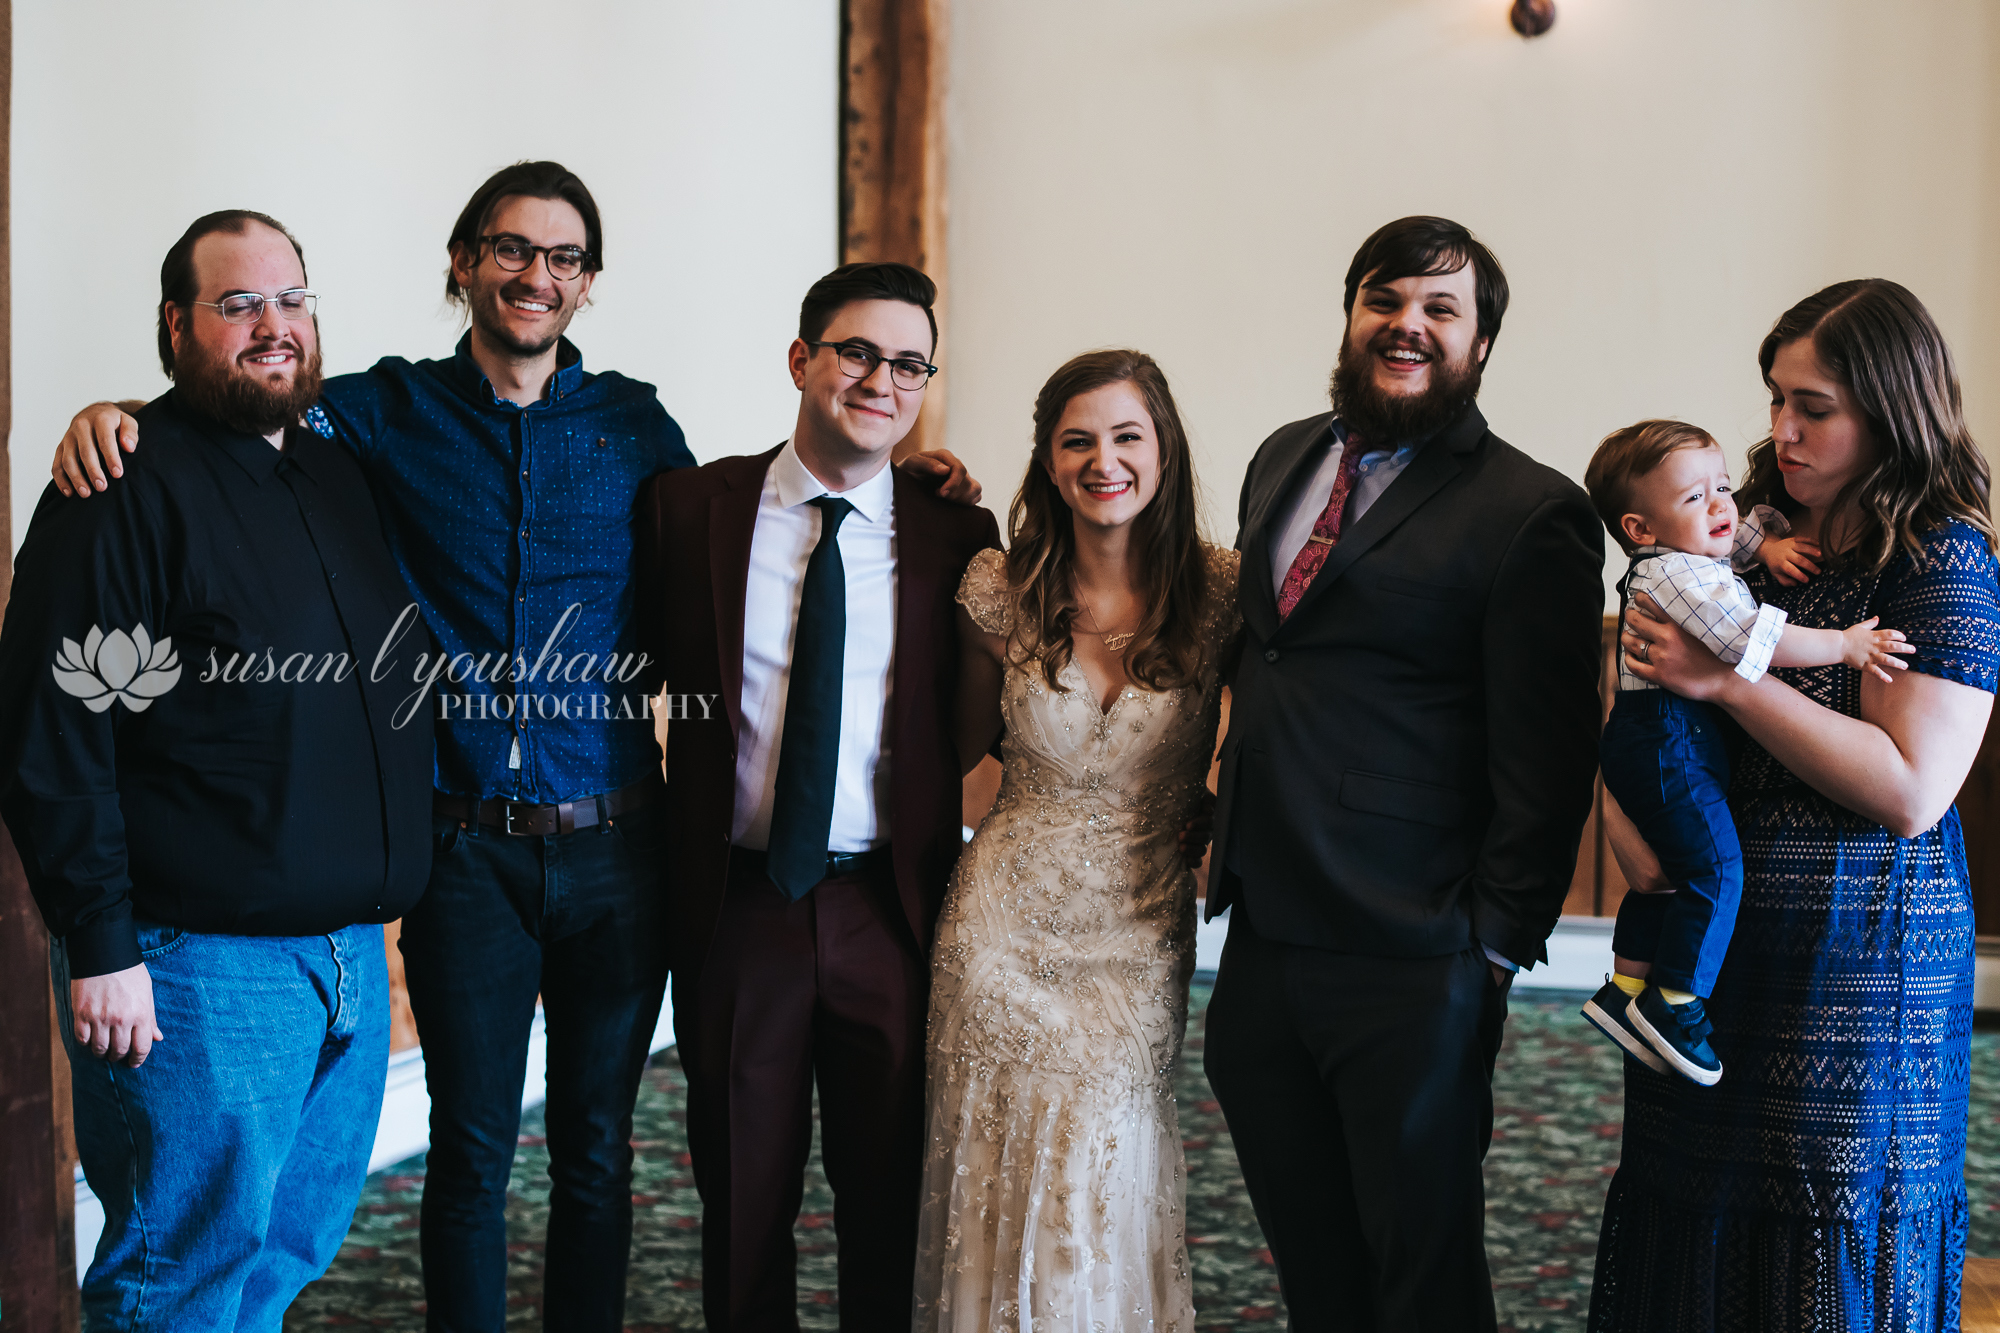 Chynna and John Wedding 05-18-2019 SLY Photography-122.jpg